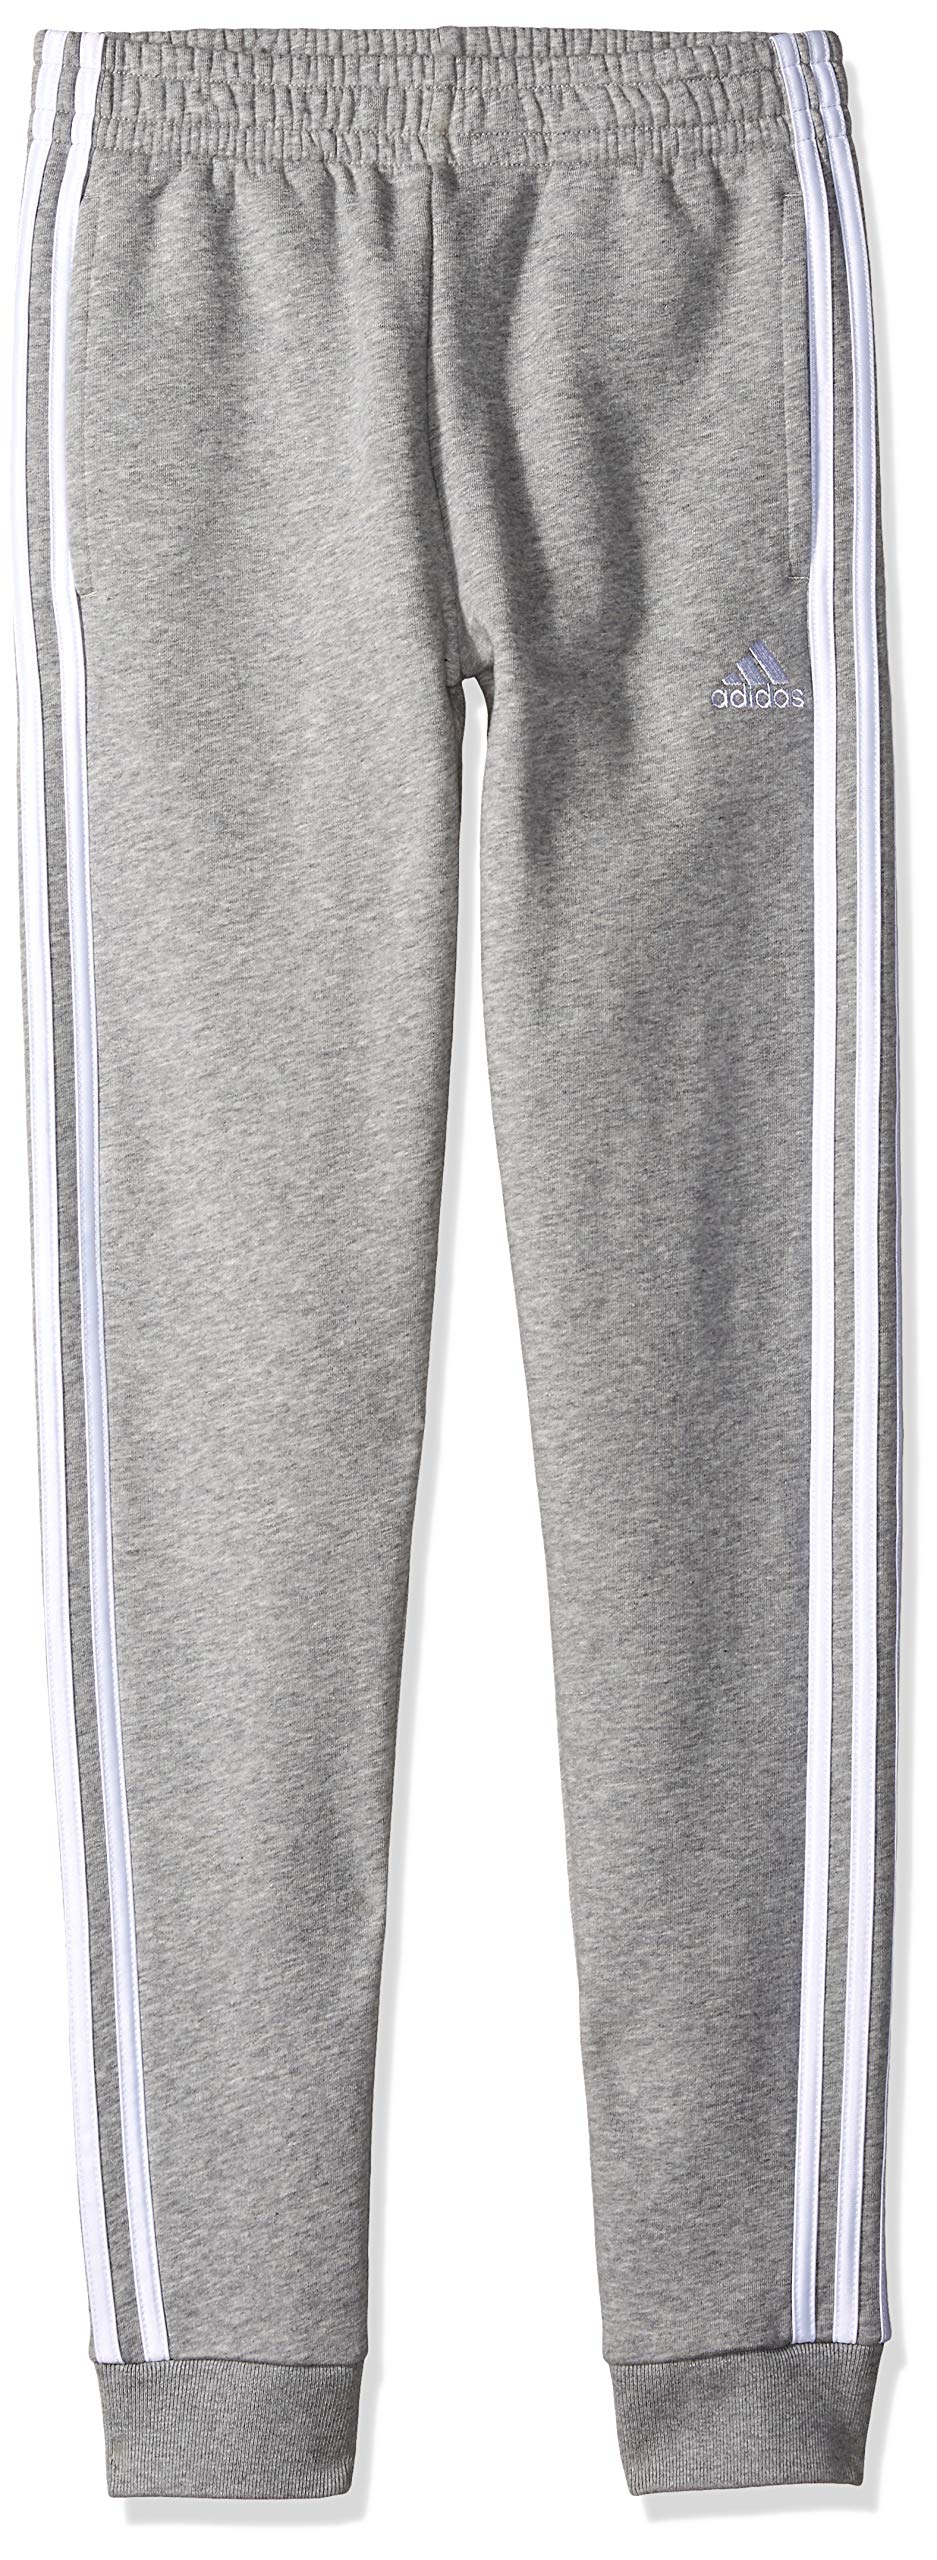 adidas Boys' Big Fleece Jogger Pant, Focus Medium Grey Heather, M (10/12) by adidas